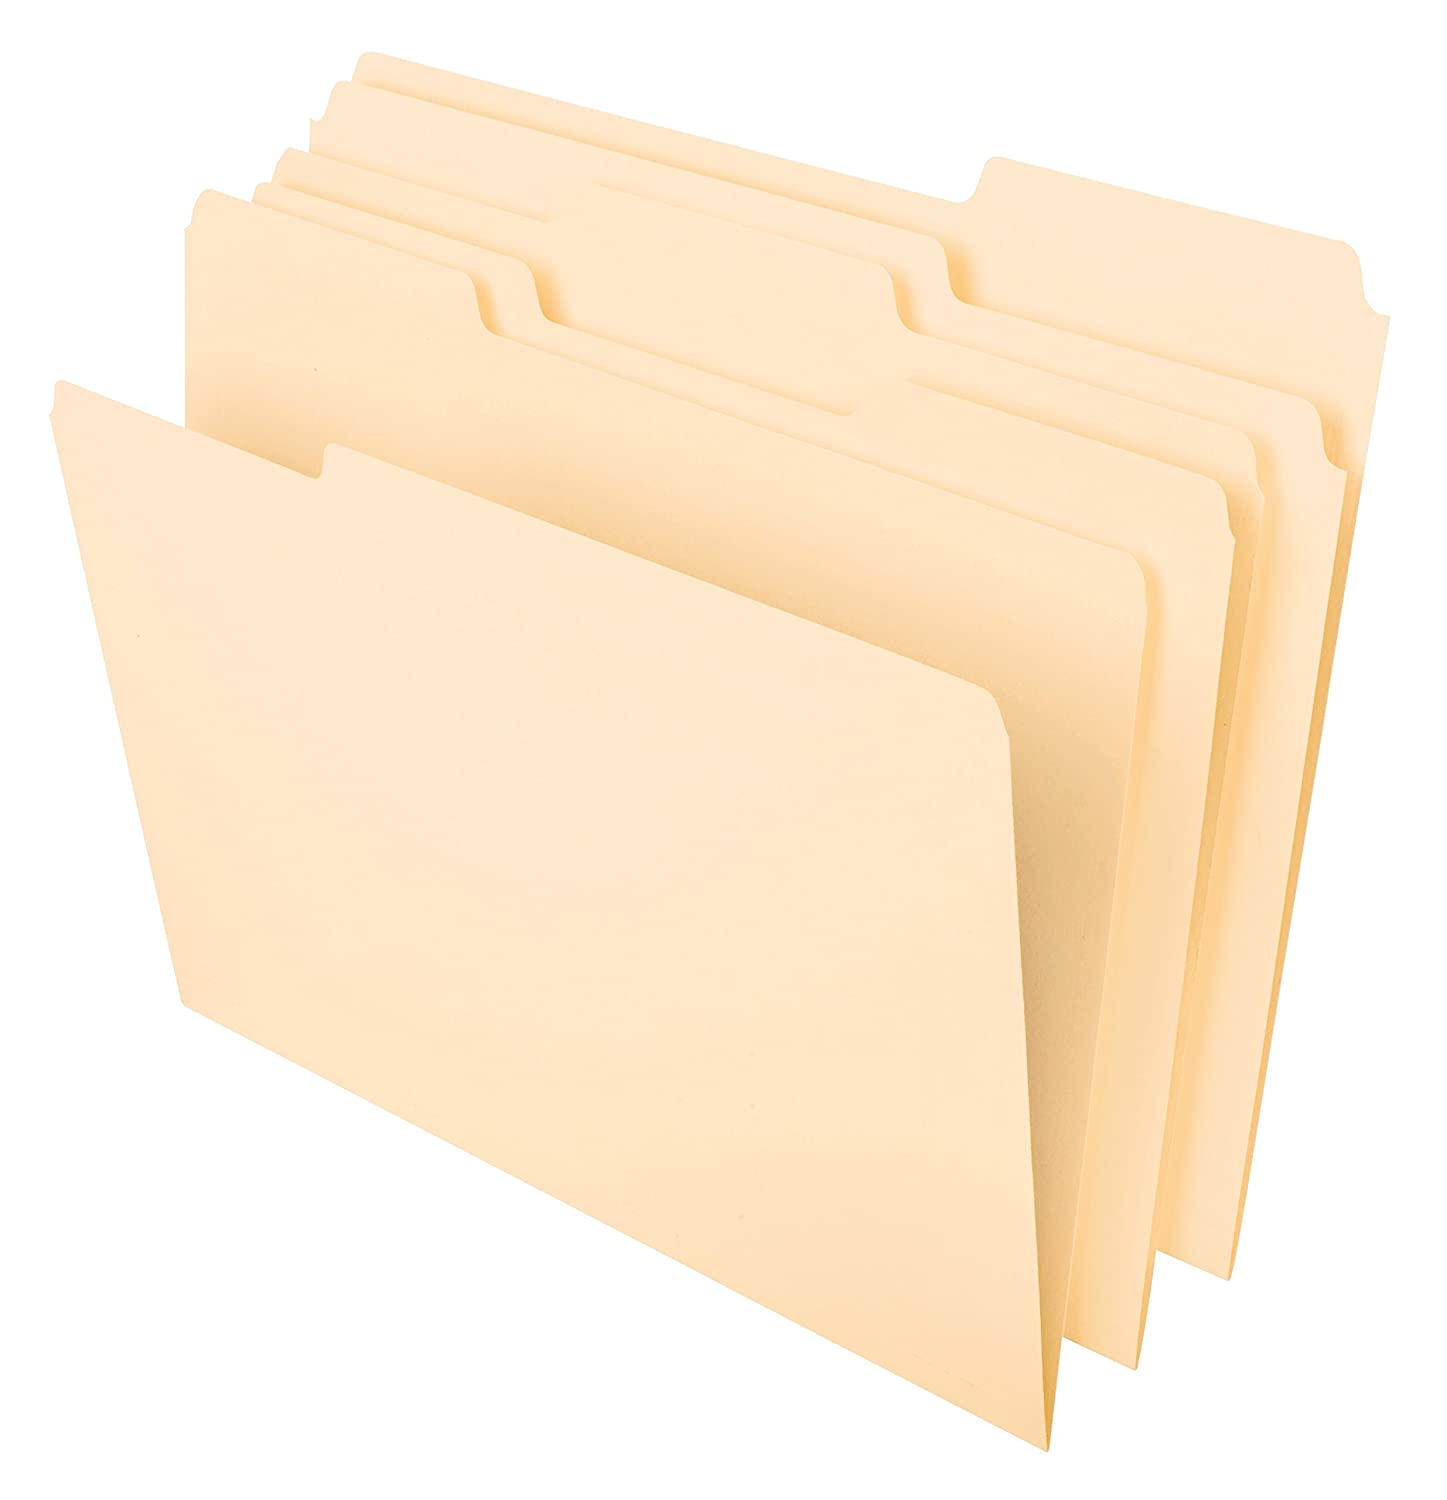 "Pendaflex File Folders, Letter Size, 8-1/2"" x 11"", Classic Manila, 1/3-Cut Tabs in Left, Right, Center Positions, 100 Per Box (65213)"